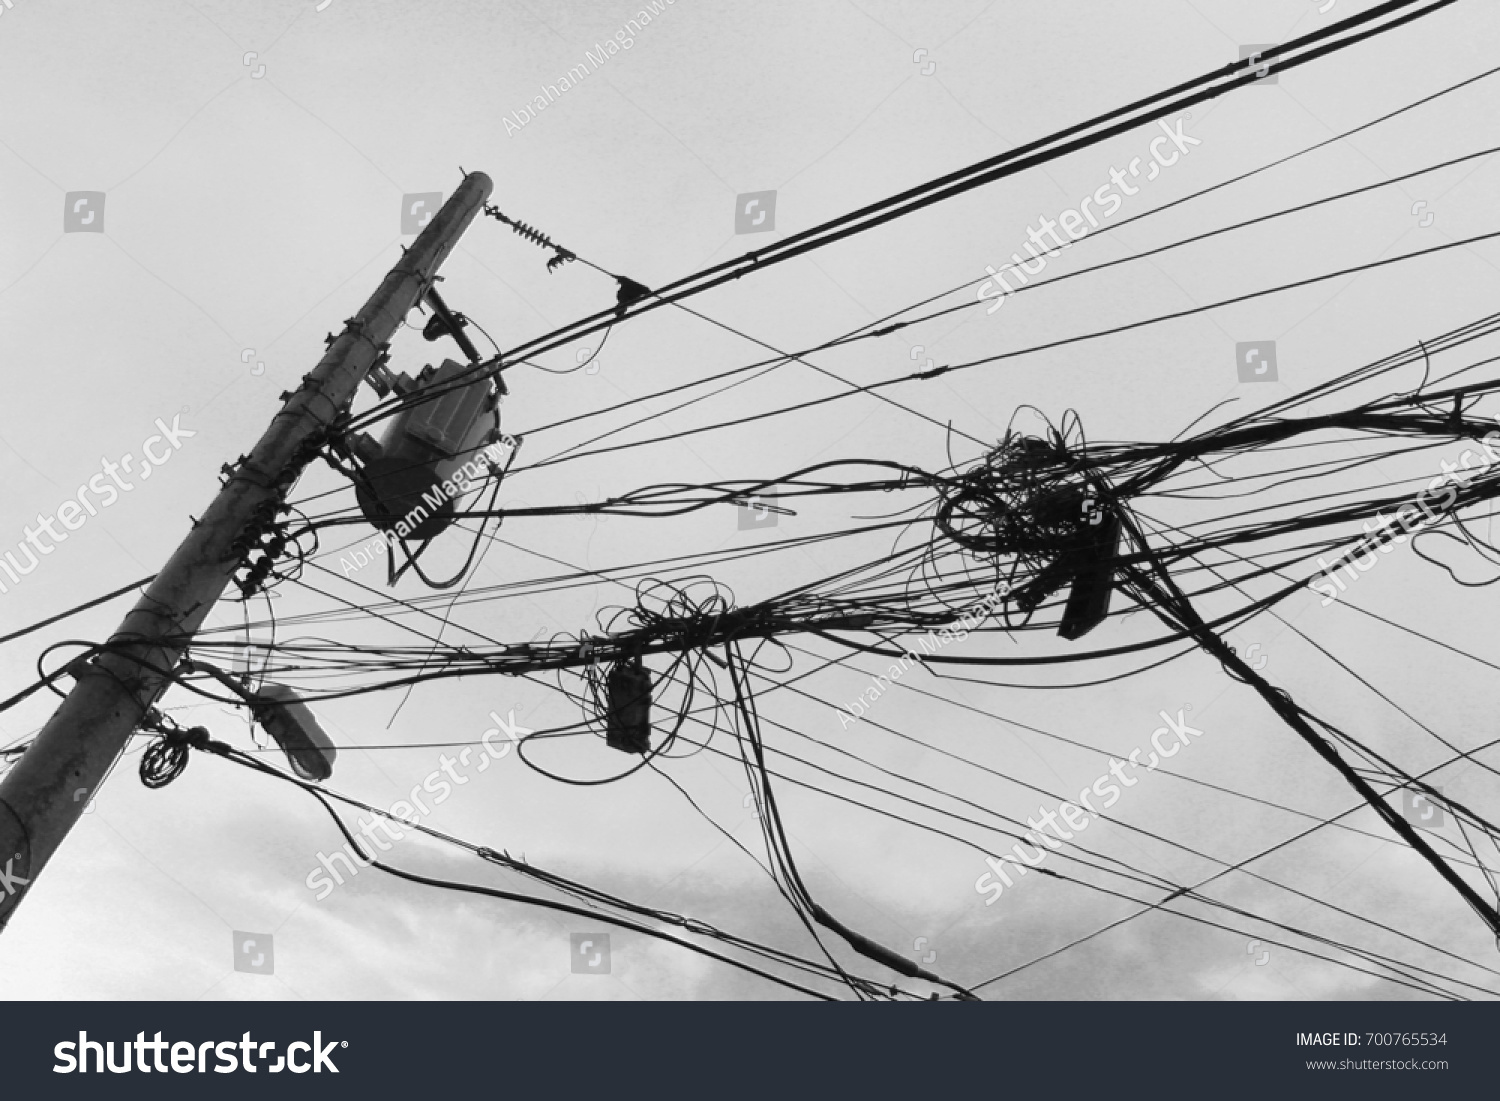 Wire Connections Transformer Electricity Post Black Stock Photo ...